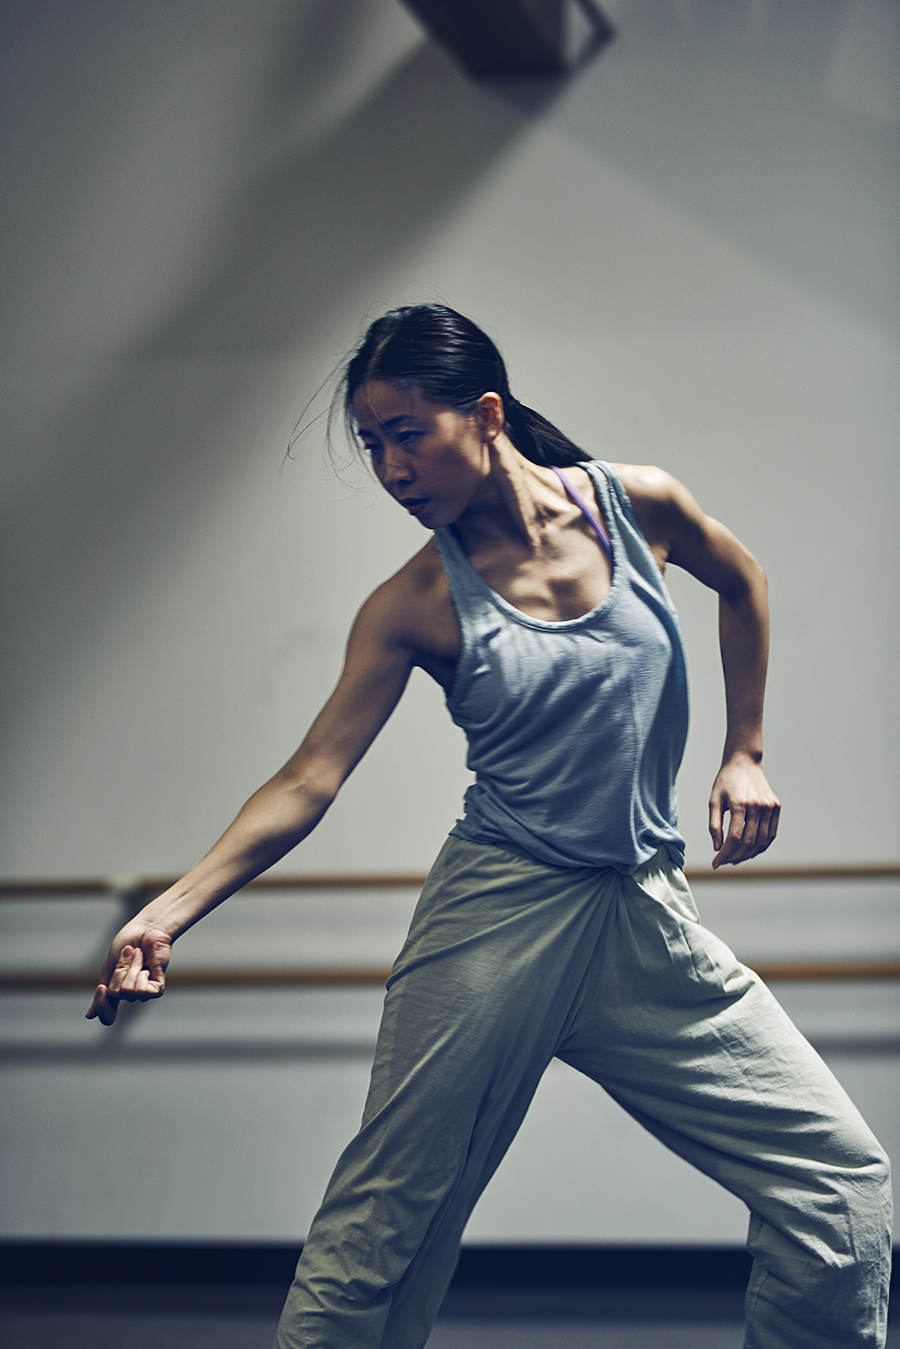 """Shiau says the highlight of her career so far was """"performing in my home country for the first time as a professional dancer"""" last month, where she presented her solo work in progress at a prestigious festival for new choreography."""